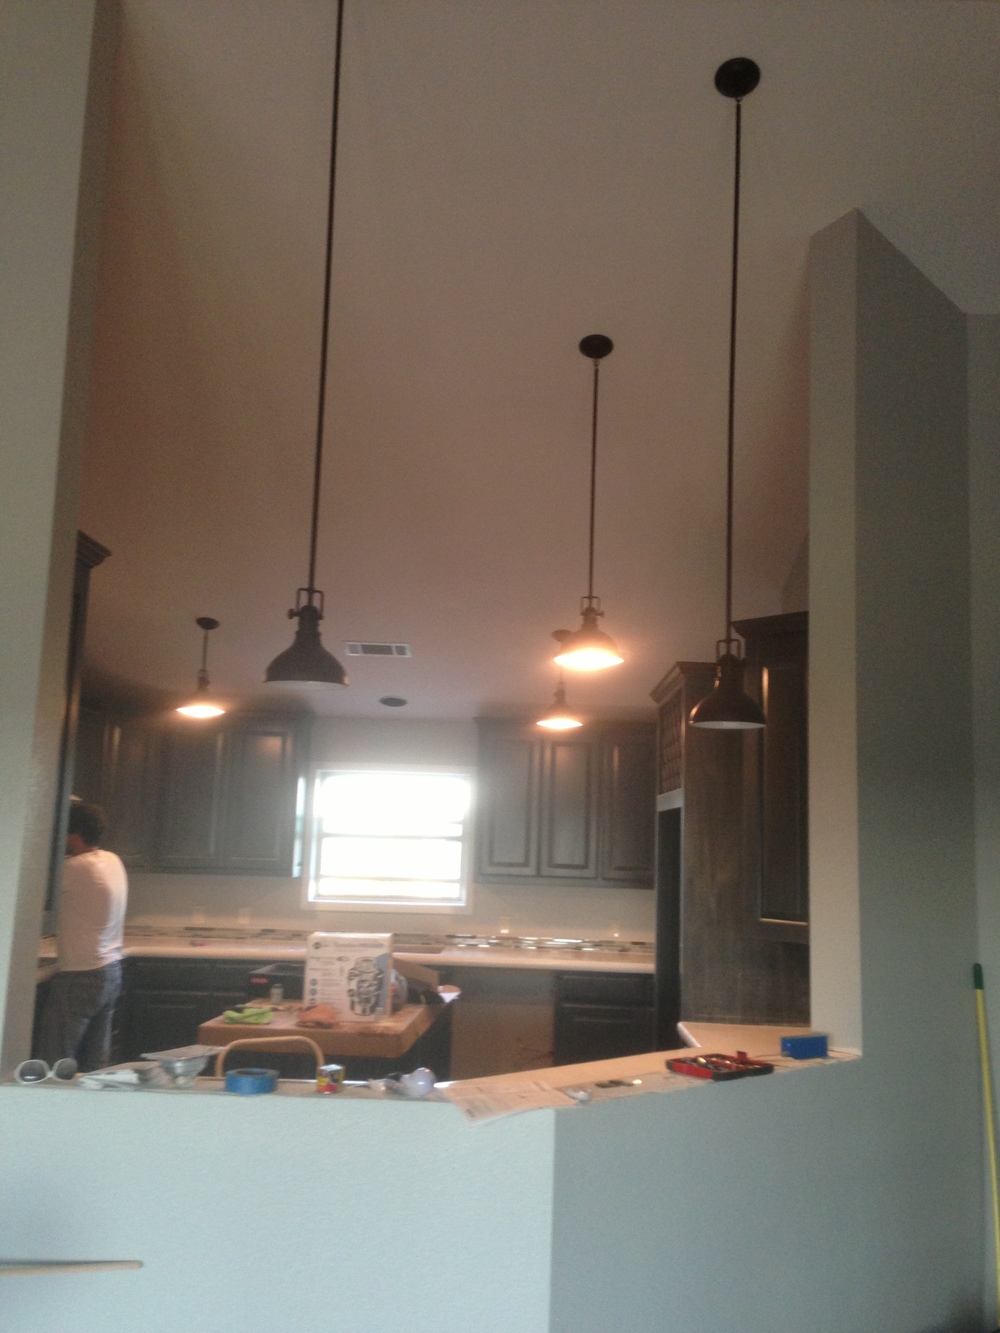 All of the lights in the kitchen are in!!!!!